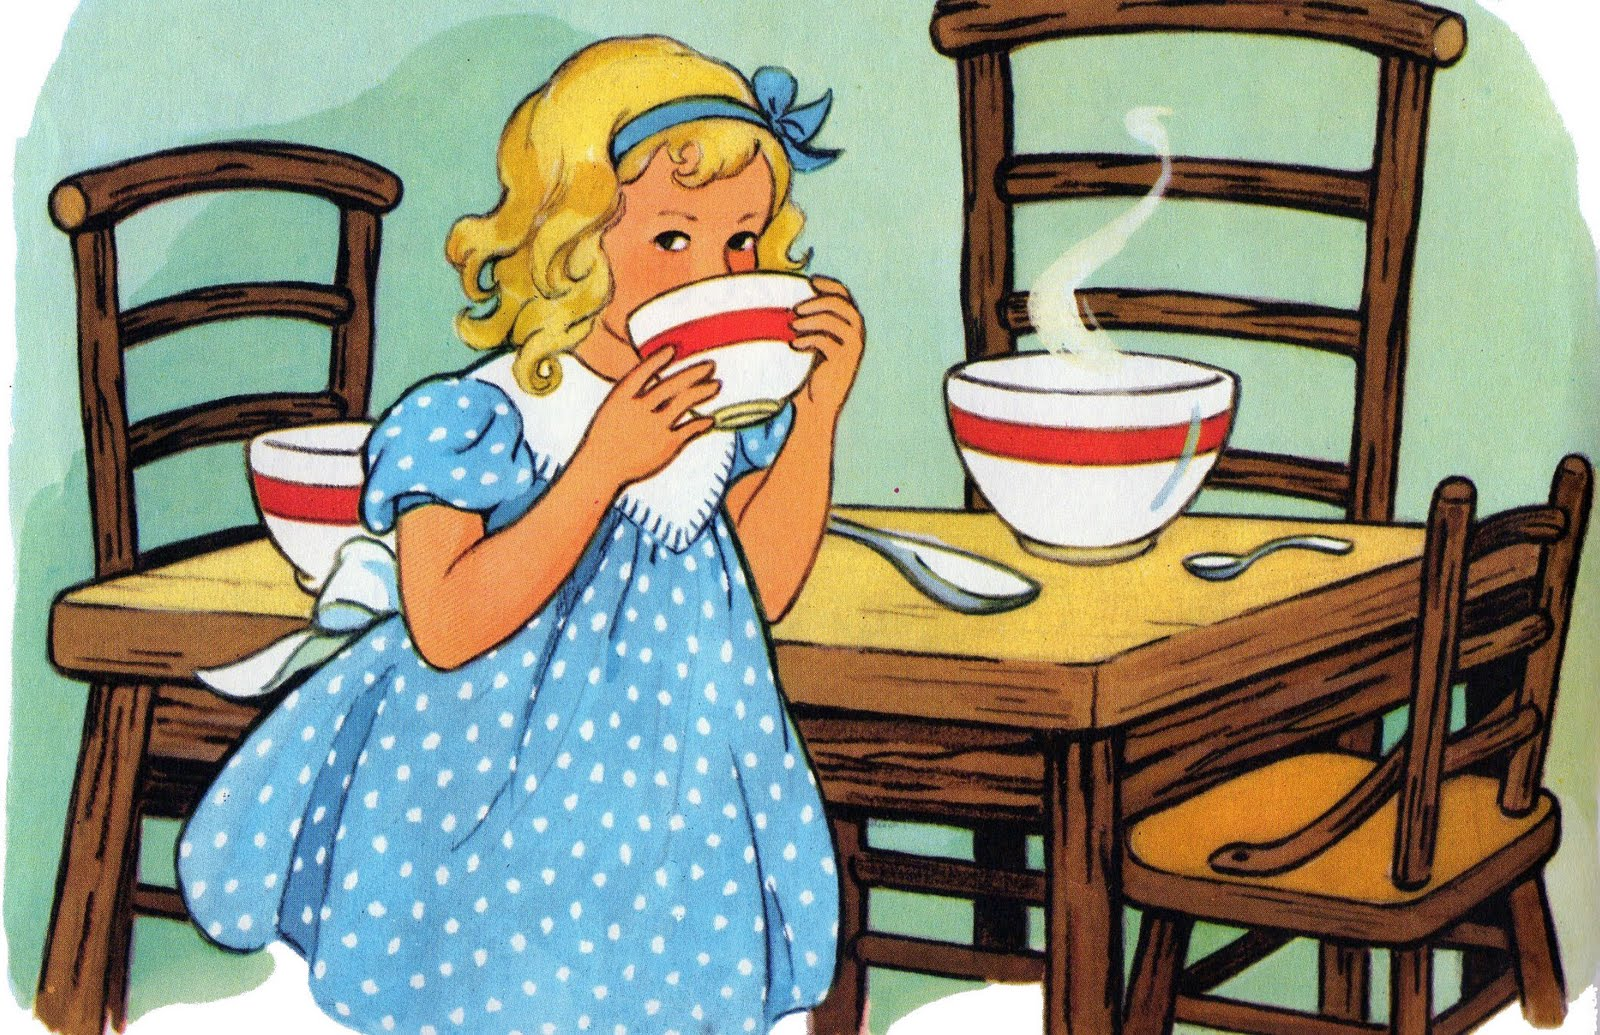 Uncategorized Goldilocks And Three Little Bears googoogallery obscure scan sunday the story of goldilocks and for now lets focus on an old favorite all about a little messy blonde girl three very hungry bears